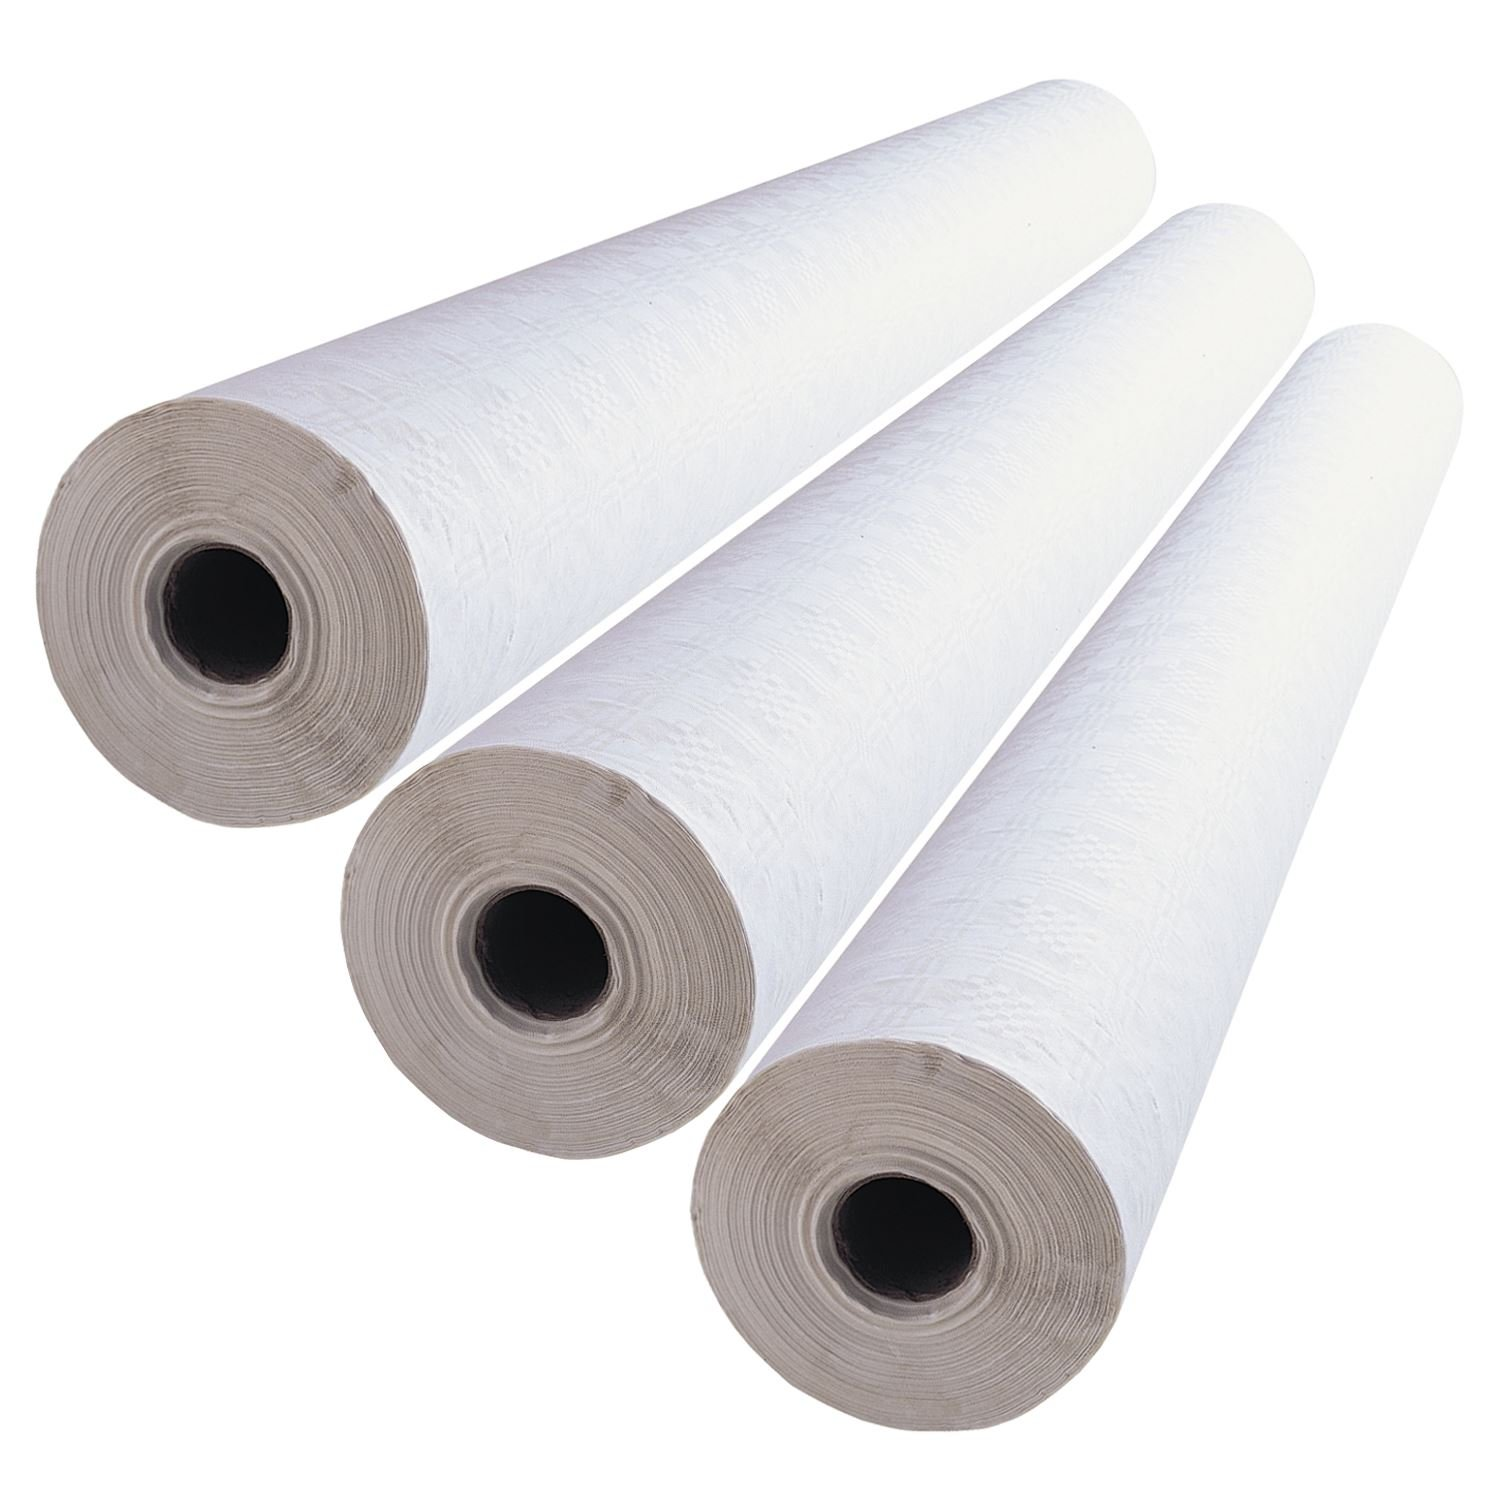 3 x Simpa® White Banqueting Roll 100M (L) x 1.16M (W) Domestic & Commercial Party Catering Event Supplies High Quality Disposable Paper Table Covering with embossed damask design.